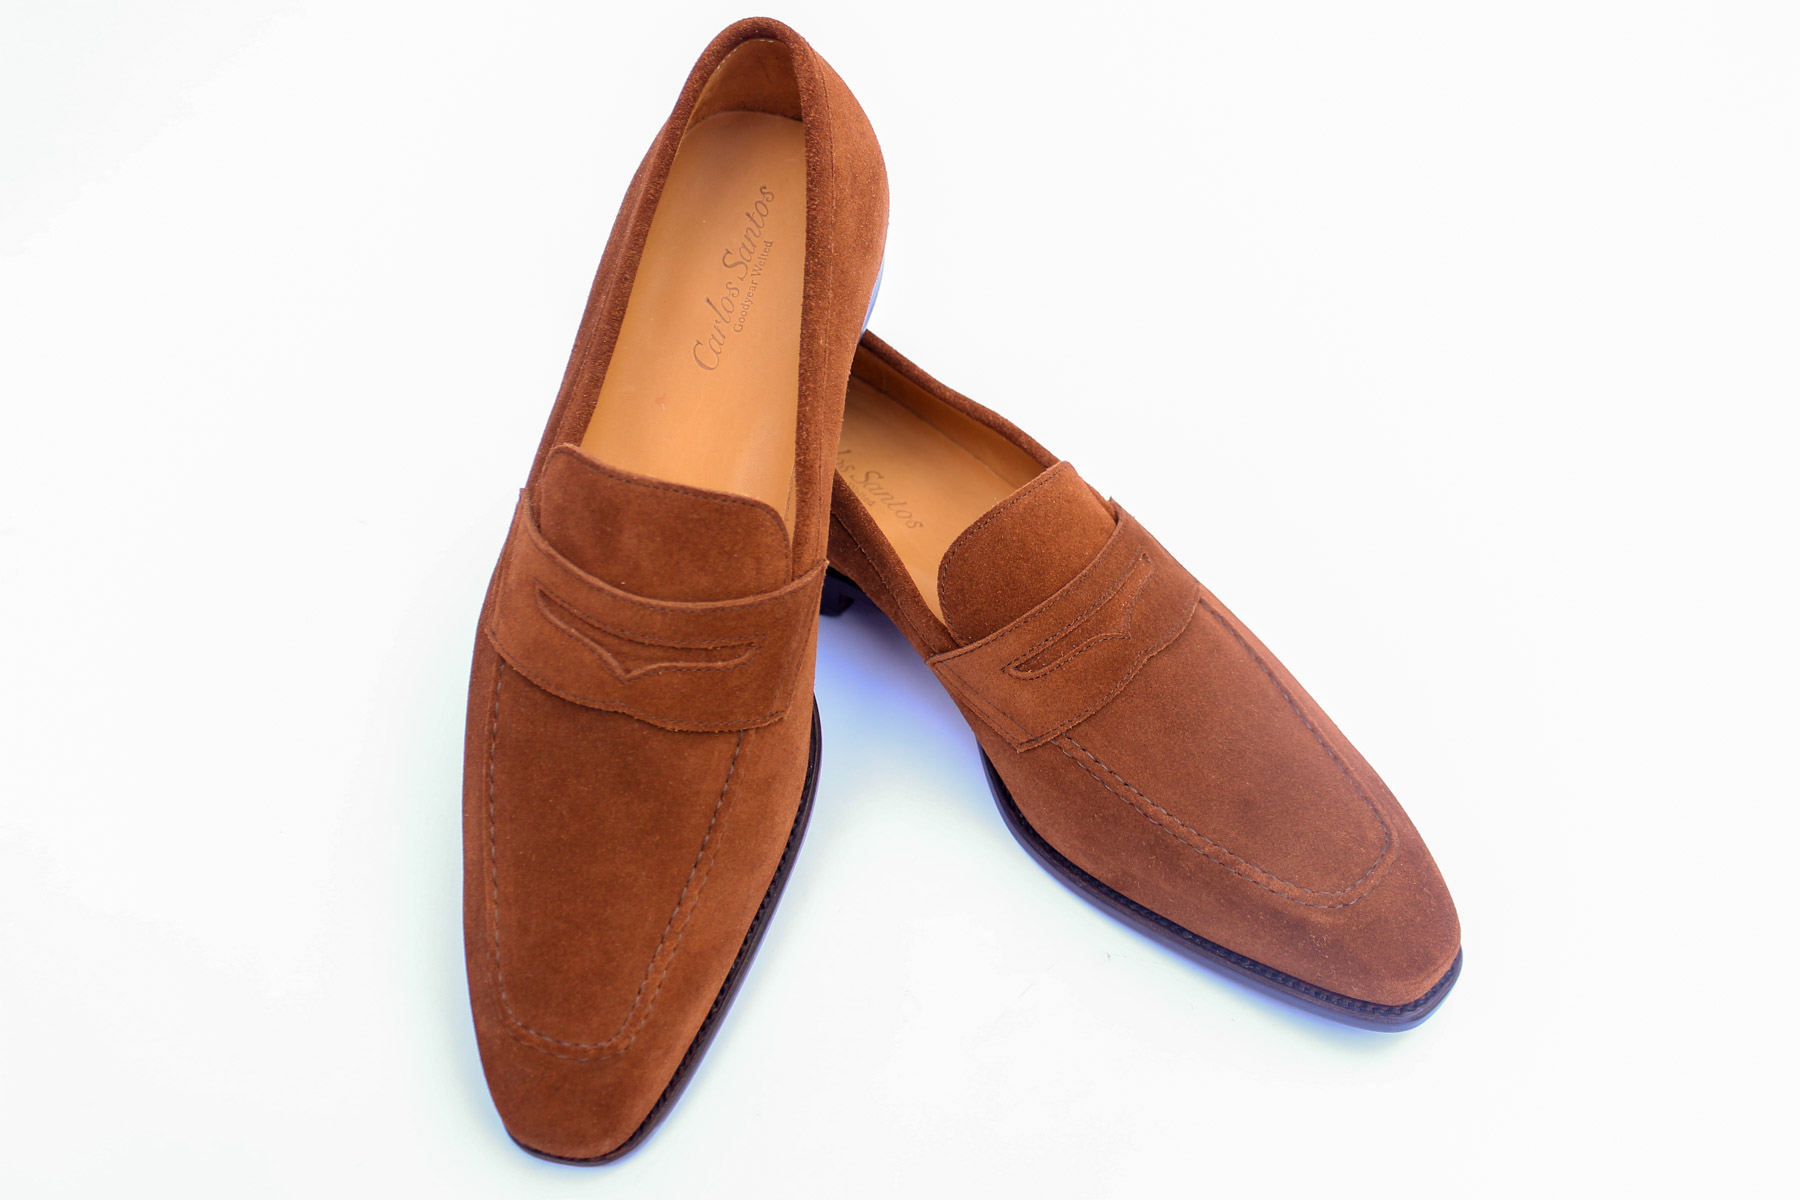 Carlos Santos Loafers Review - The Noble Shoe Stockholm